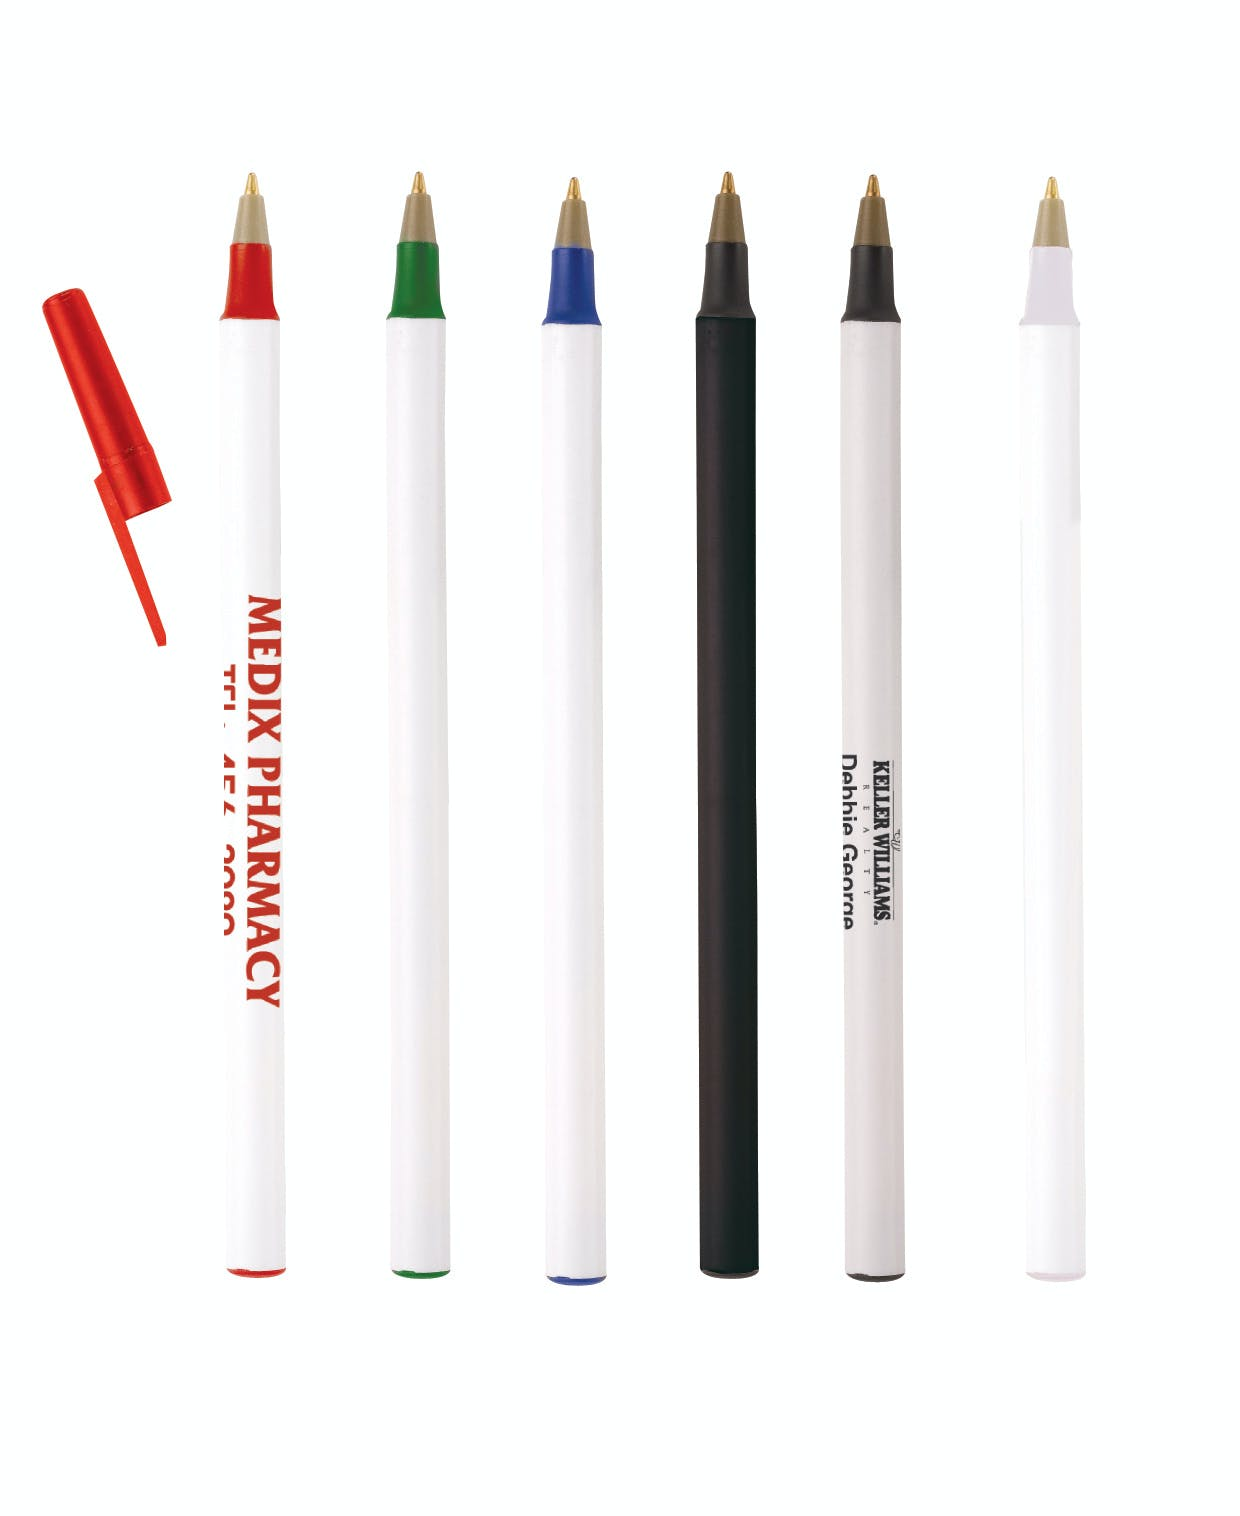 Plastic Pen (Item # KDFHR-ISFYQ) Pen sold by InkEasy